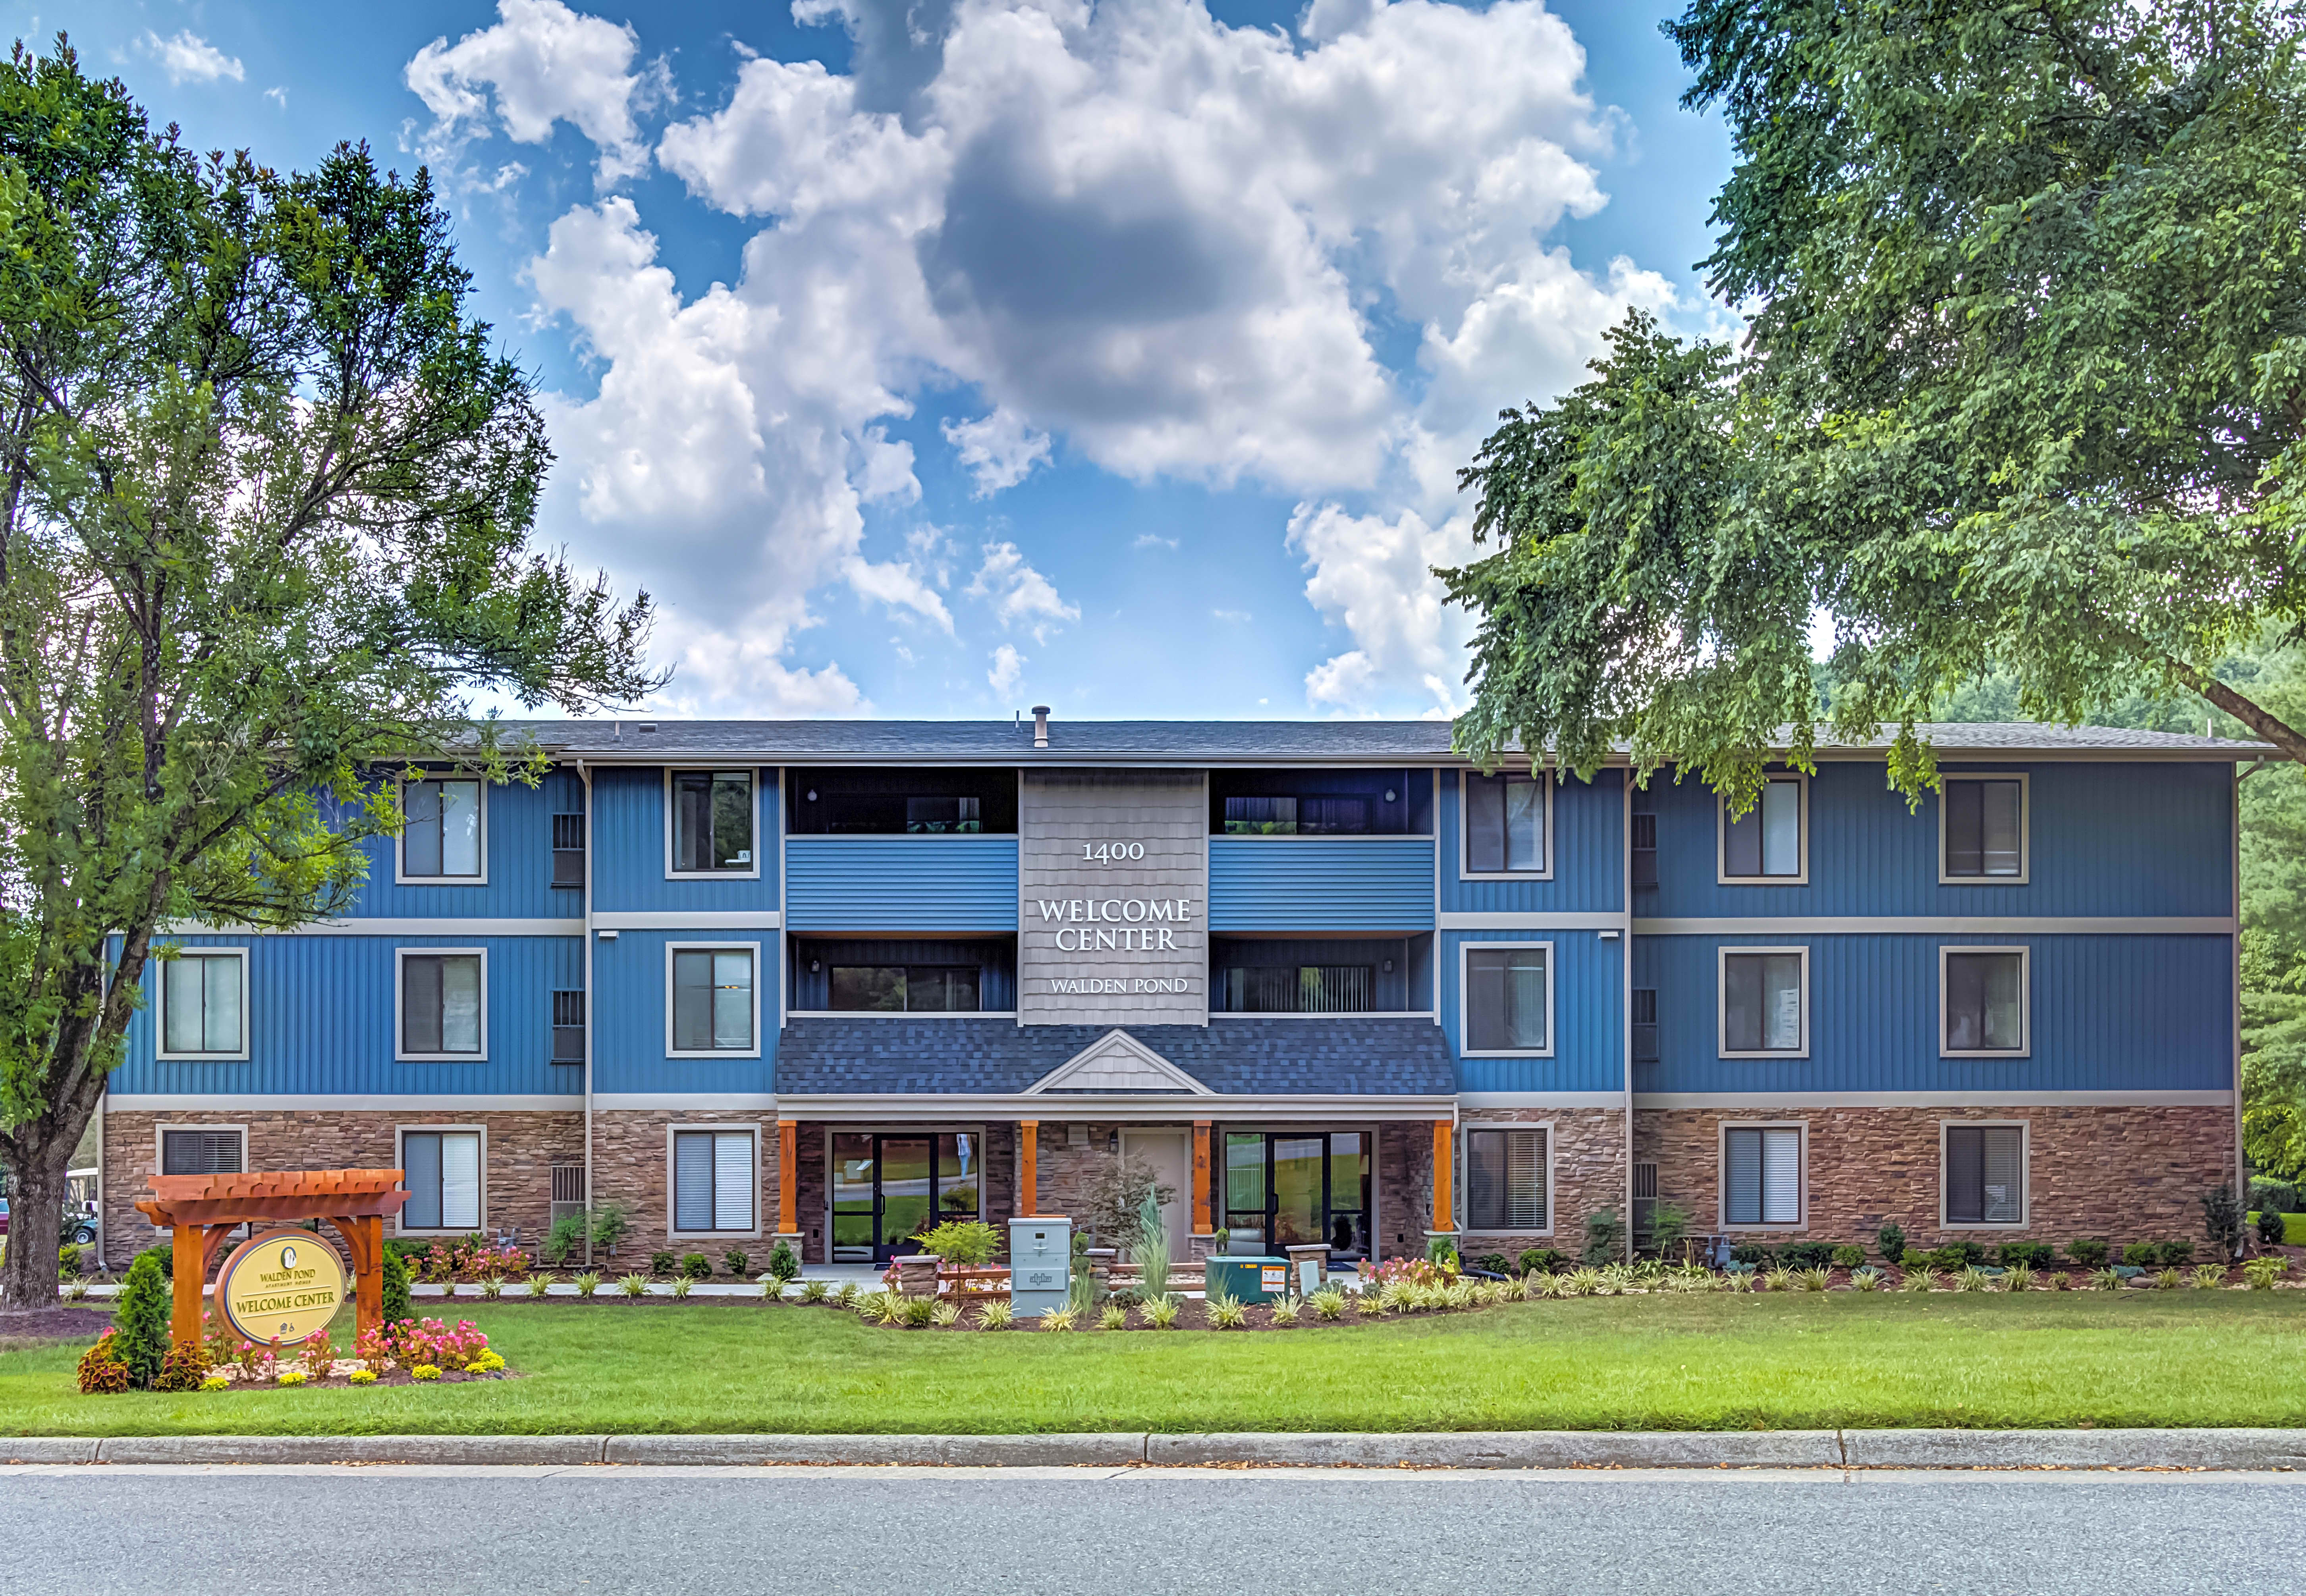 Apartments Near LC Walden Pond for Lynchburg College Students in Lynchburg, VA